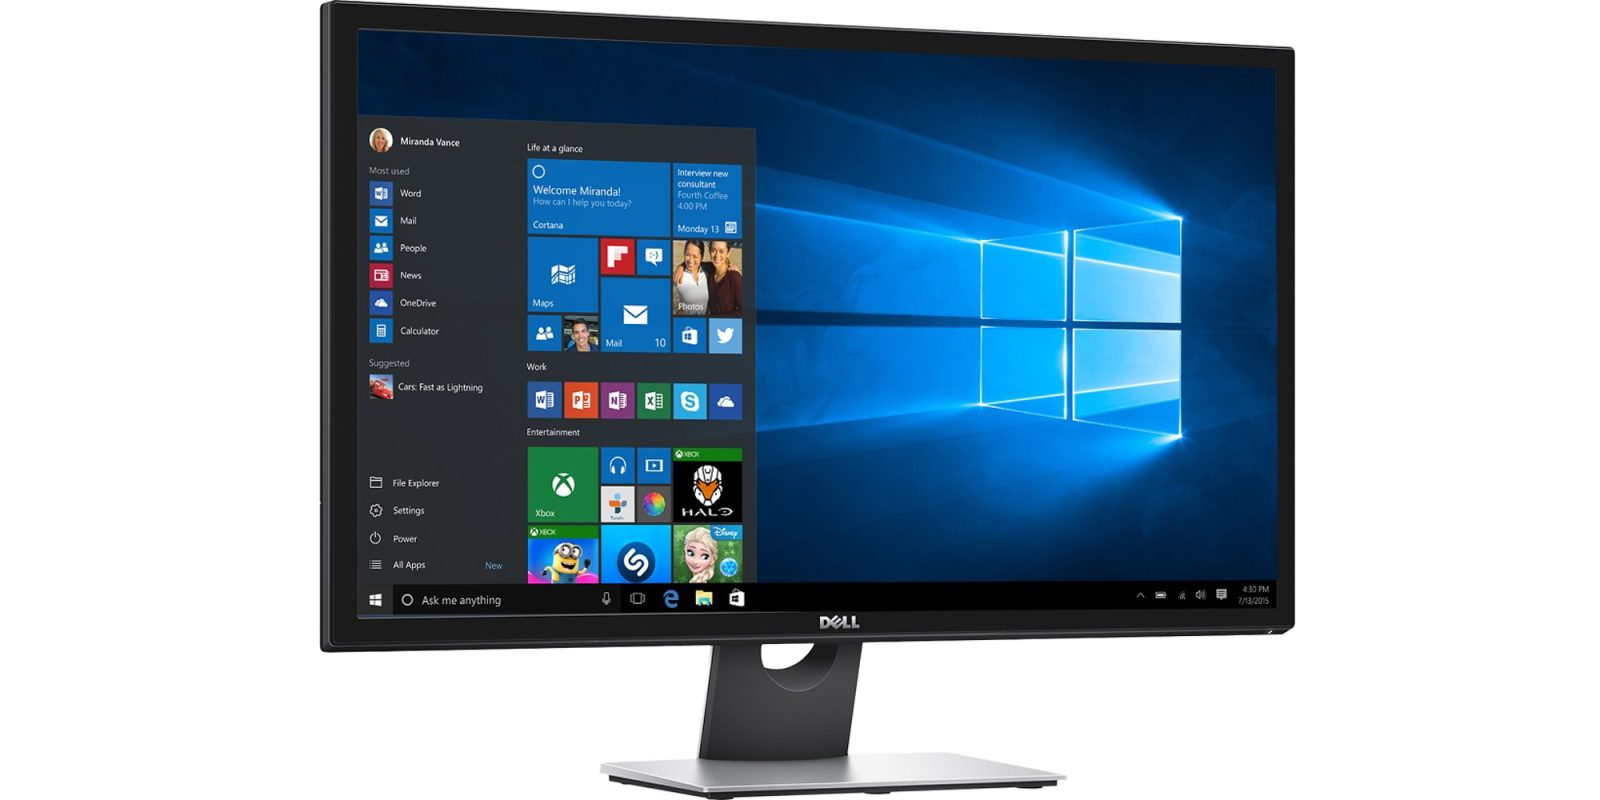 Add The 28 Inch Dell 4k Monitor To Your Desk For 130 Off Now 270 Shipped